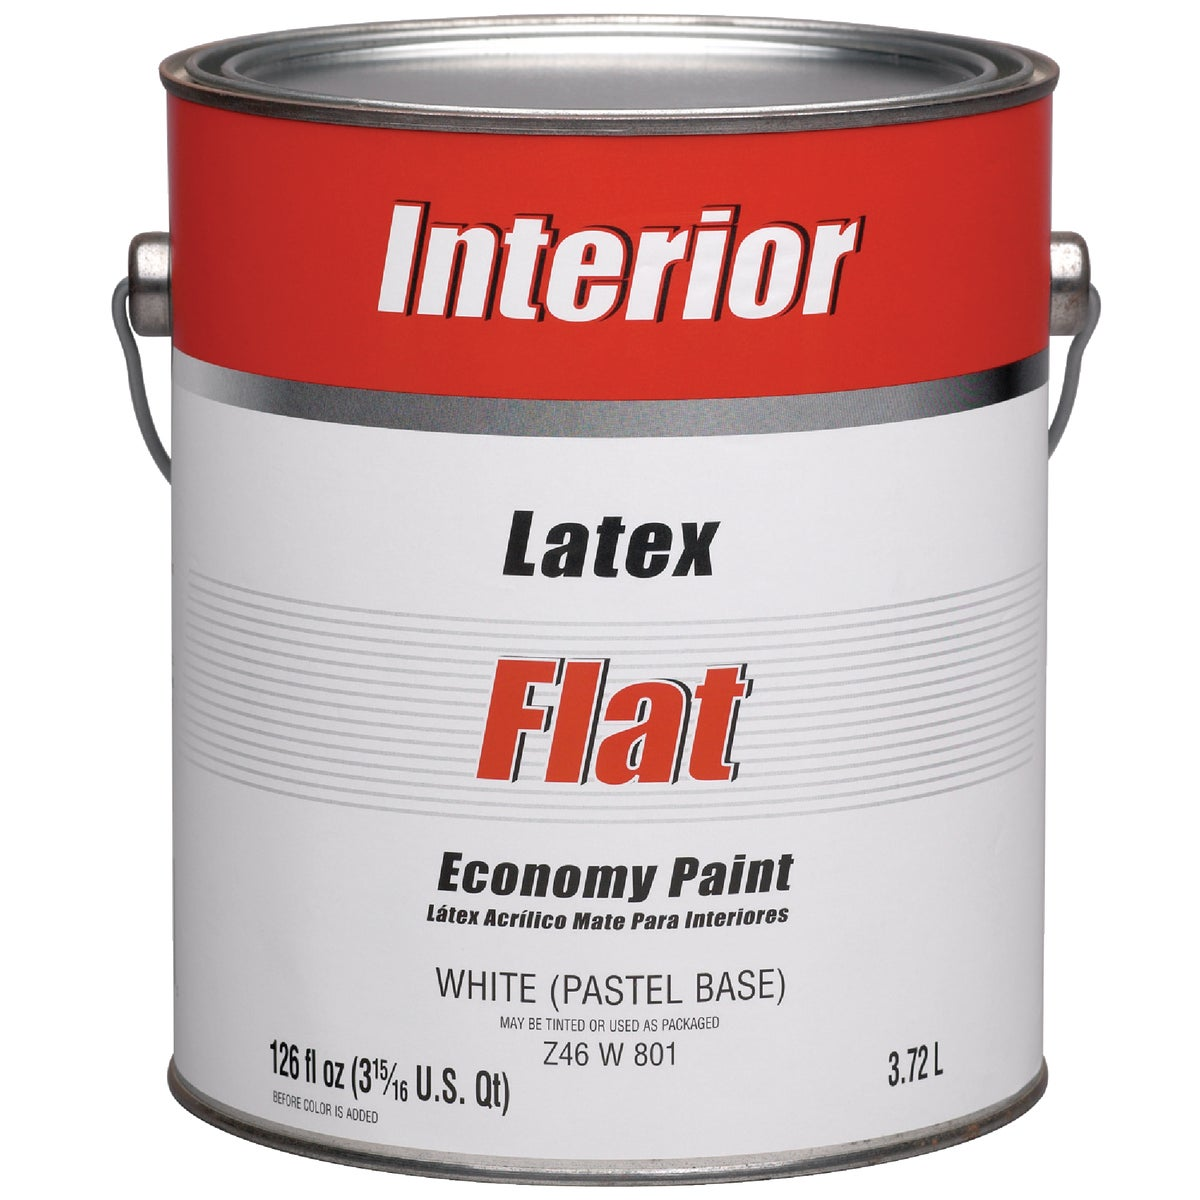 INT FLAT WHT/PASTL PAINT - Z46W00801-16 by Do it Best